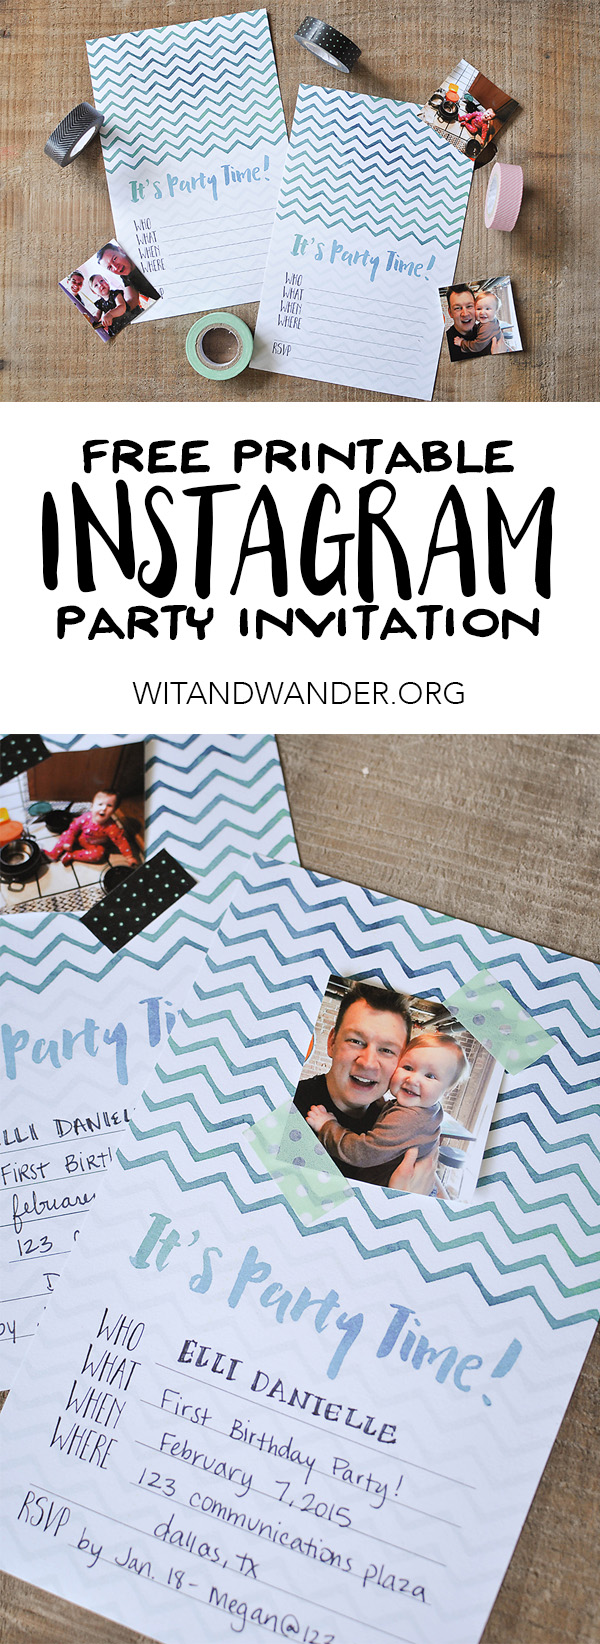 Free Printable DIY Instagram Party Invitations Our Handcrafted Life